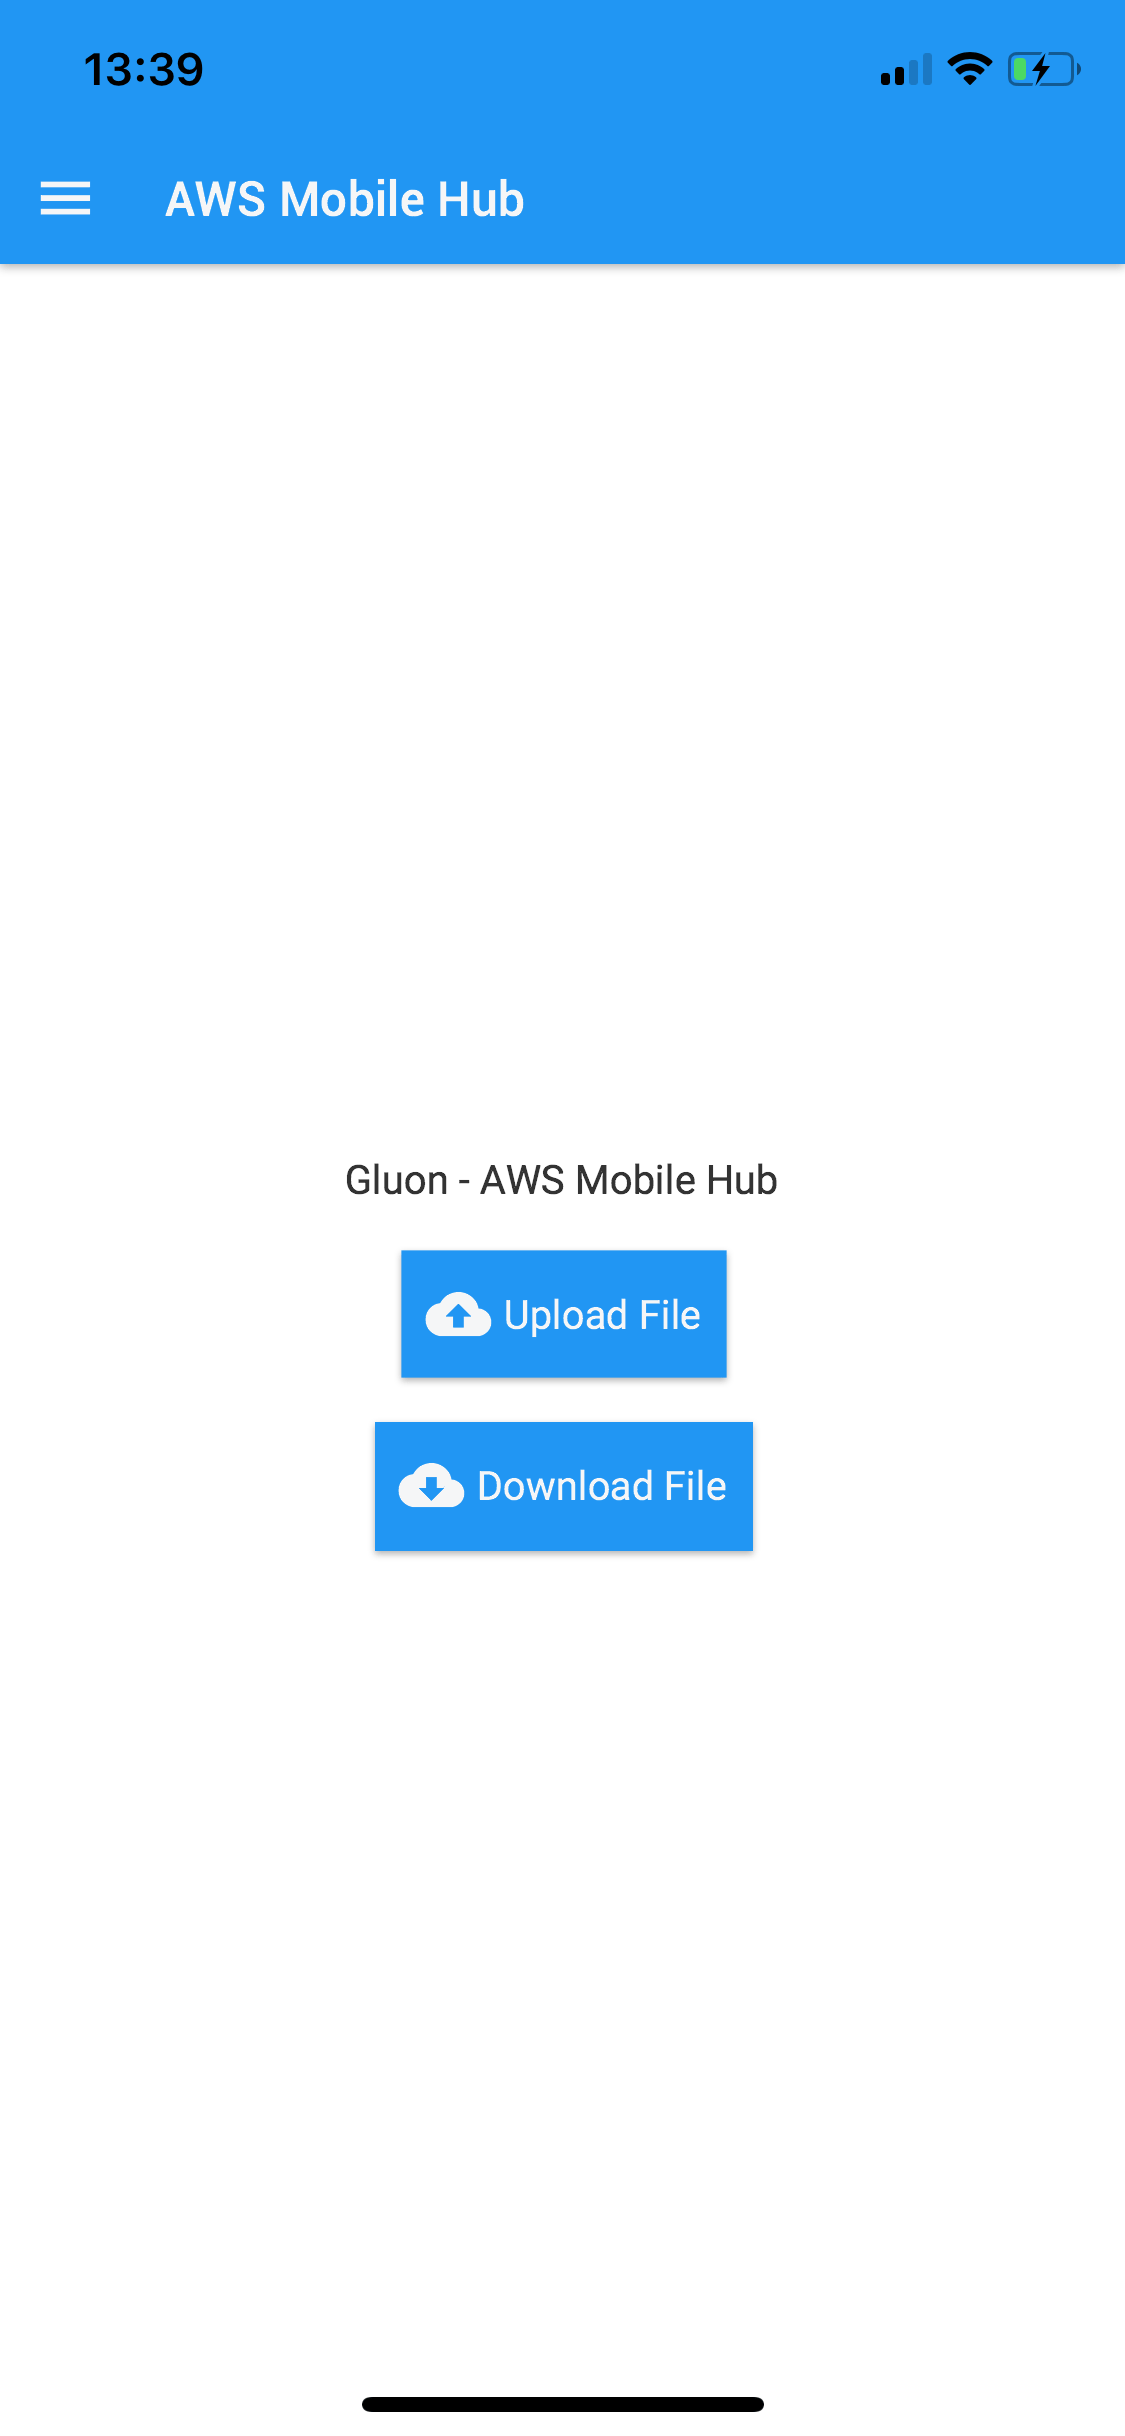 Connecting Java mobile apps to AWS cloud services - Gluon